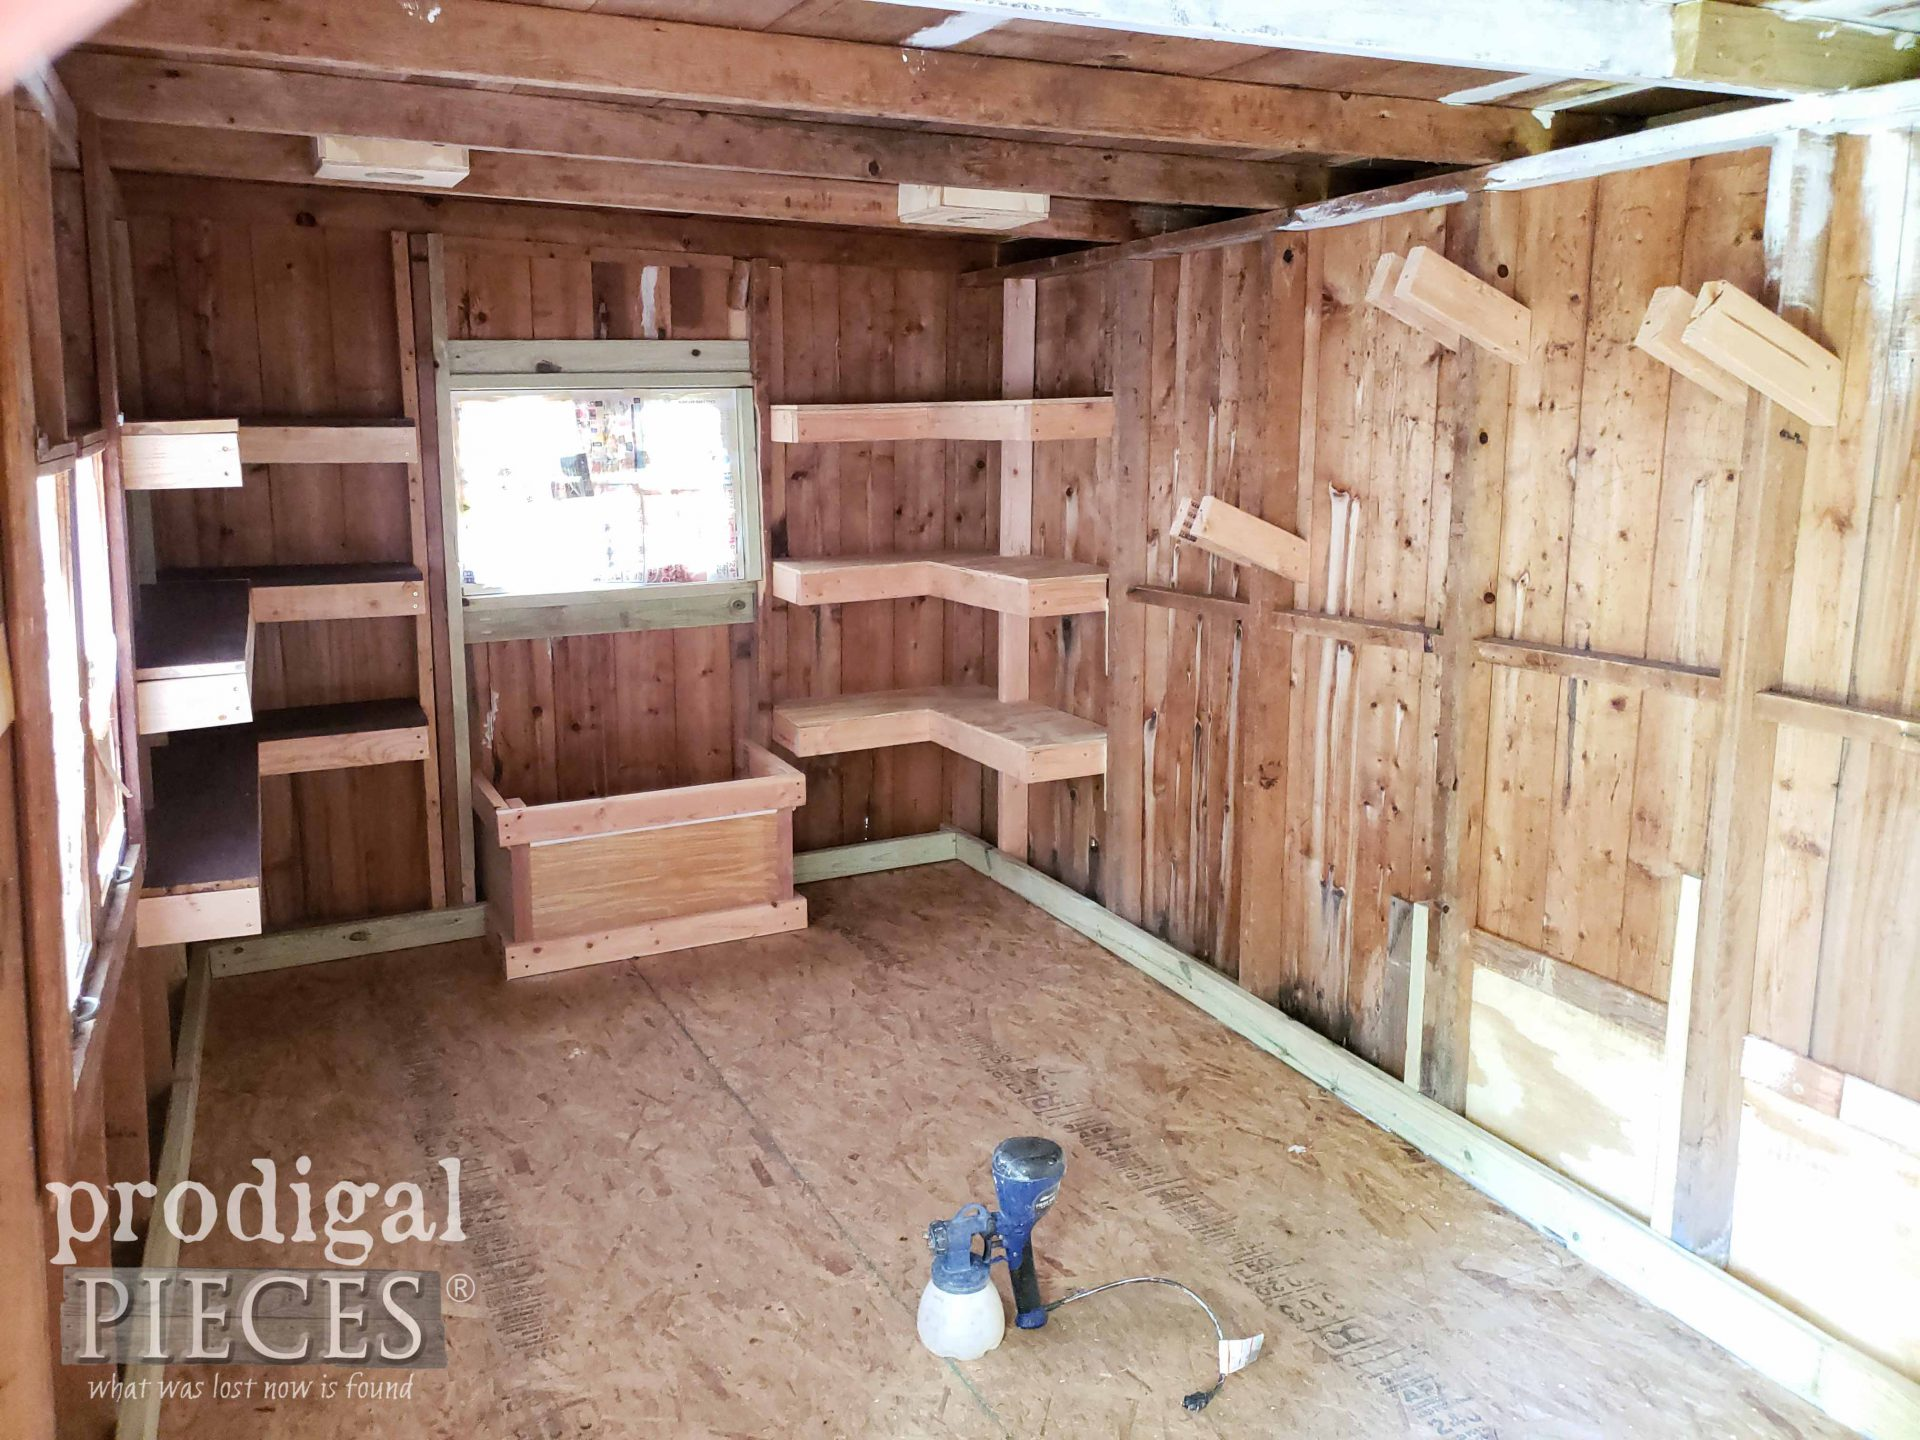 Garden Shed Interior Before Paint | prodigalpieces.com